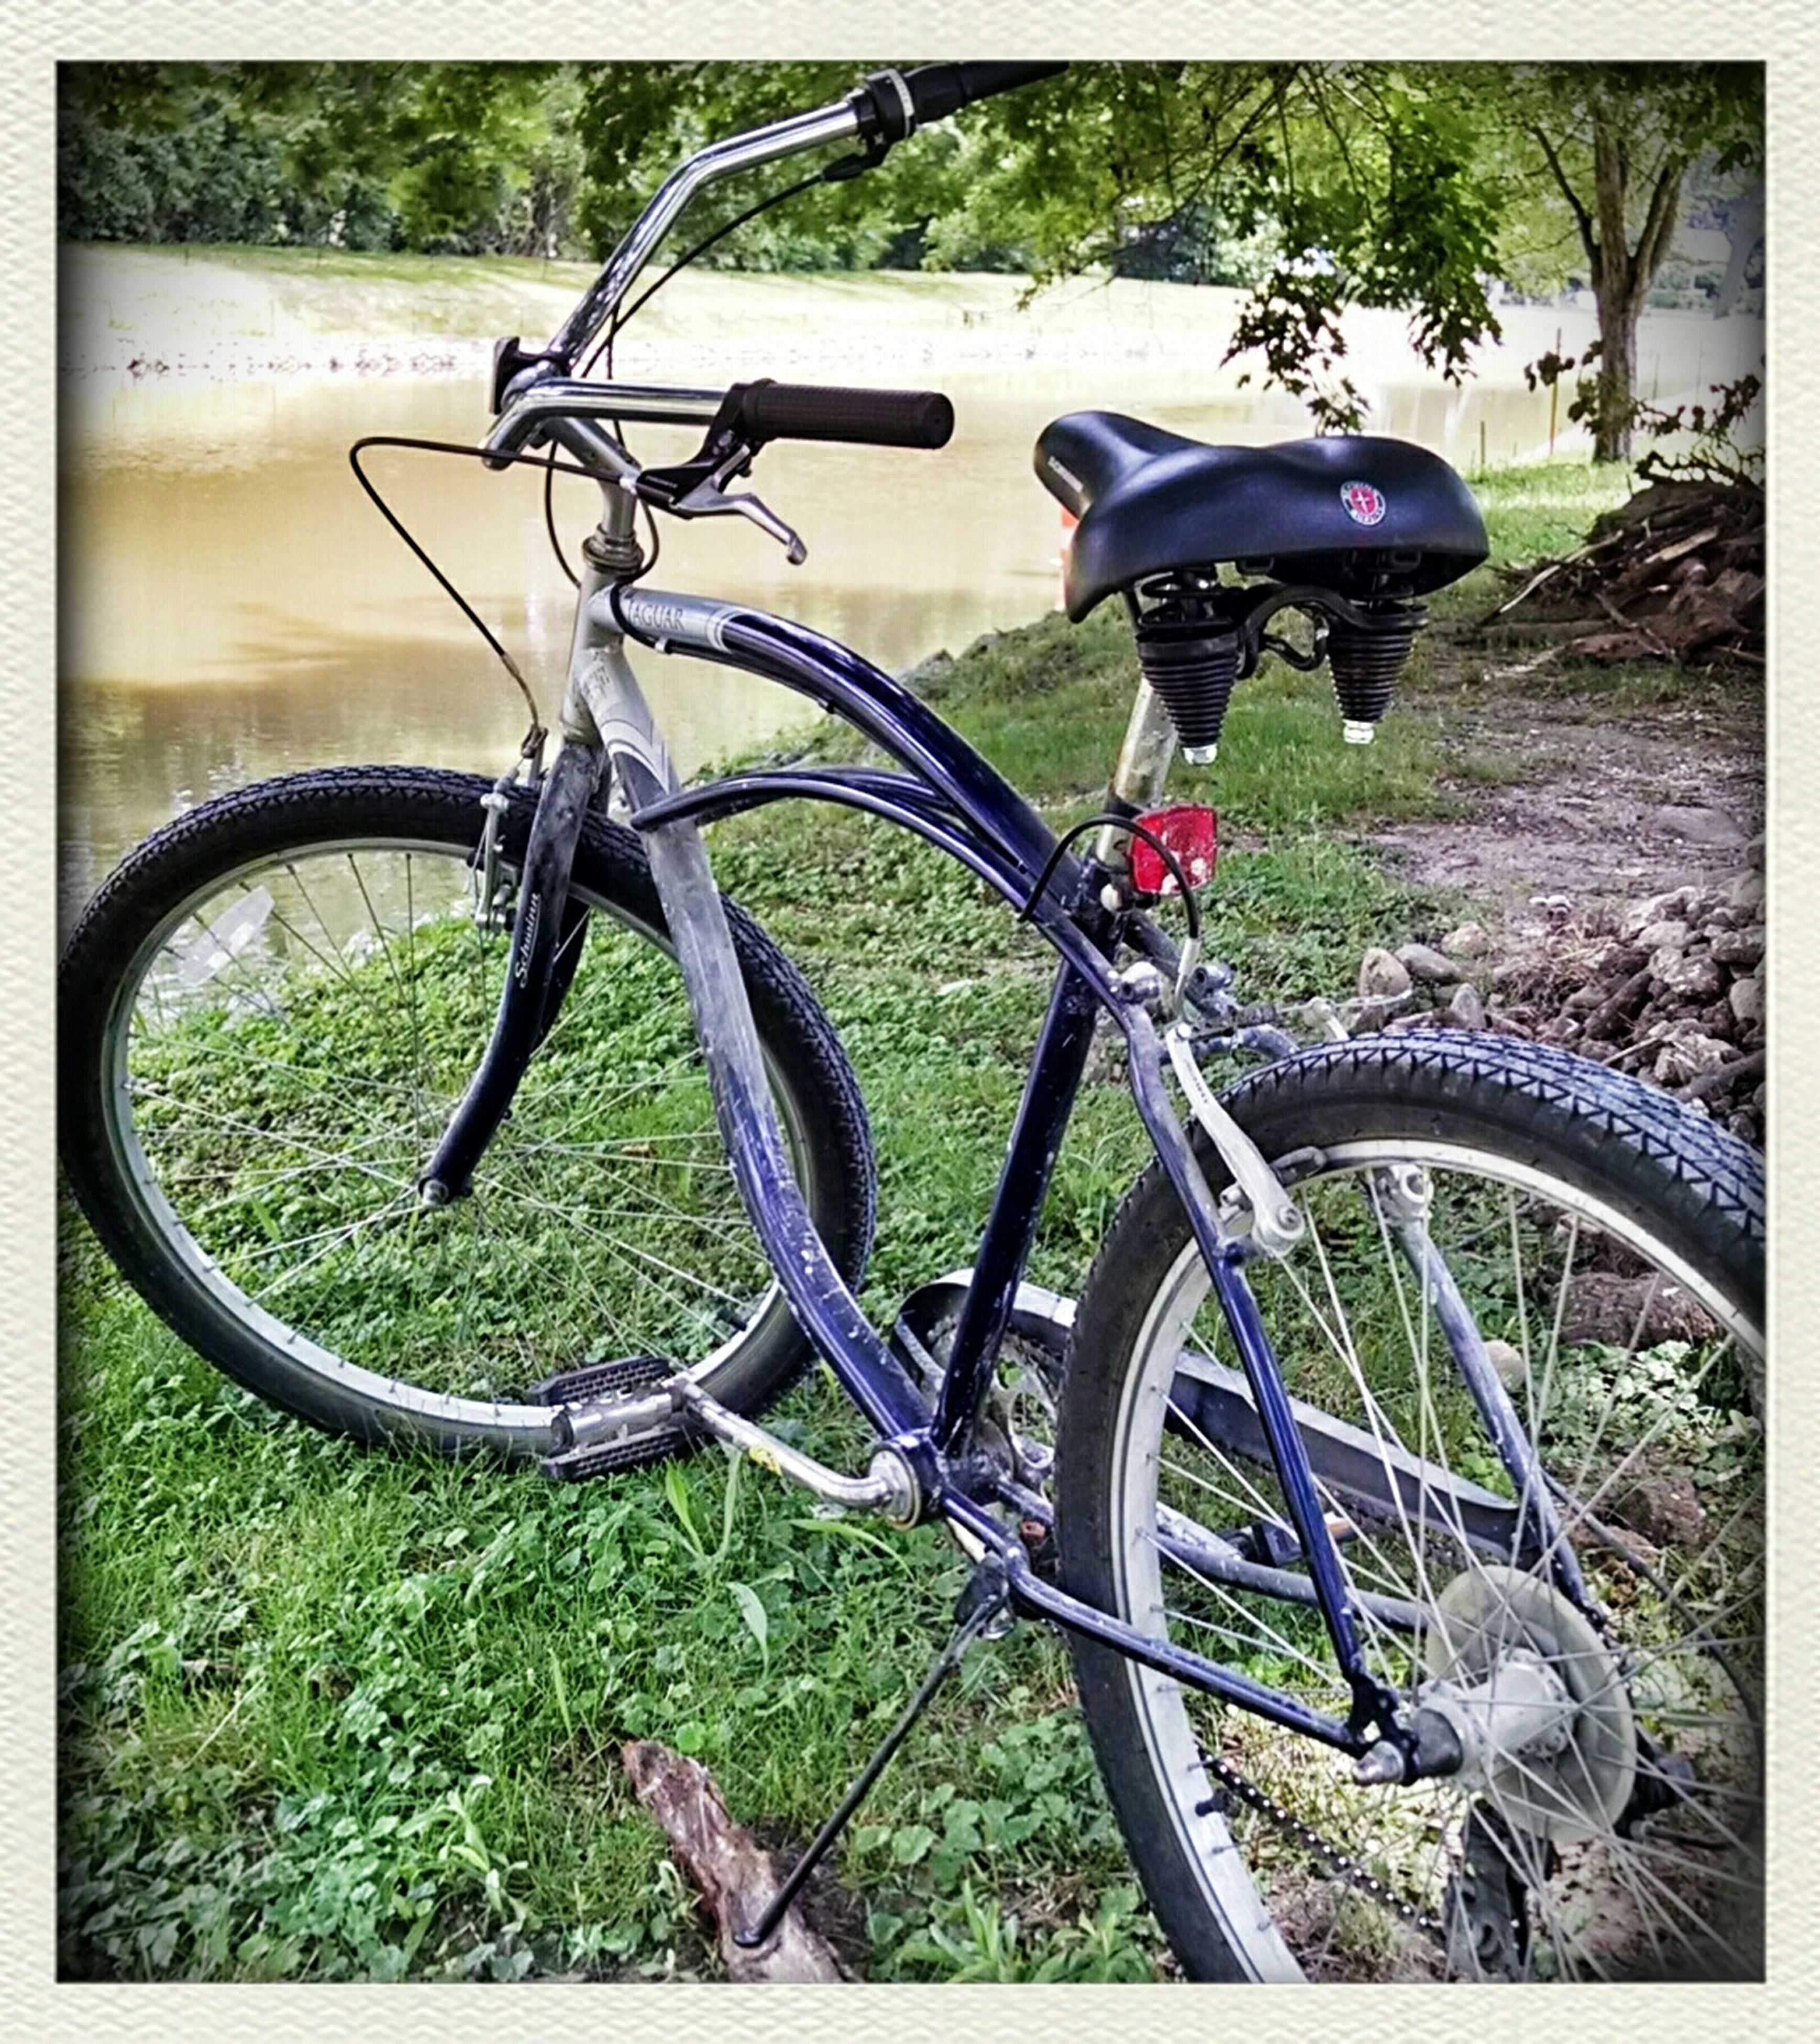 bicycle, transportation, mode of transport, land vehicle, transfer print, stationary, parked, auto post production filter, parking, wheel, plant, day, sunlight, no people, outdoors, growth, metal, cycle, leaning, tree